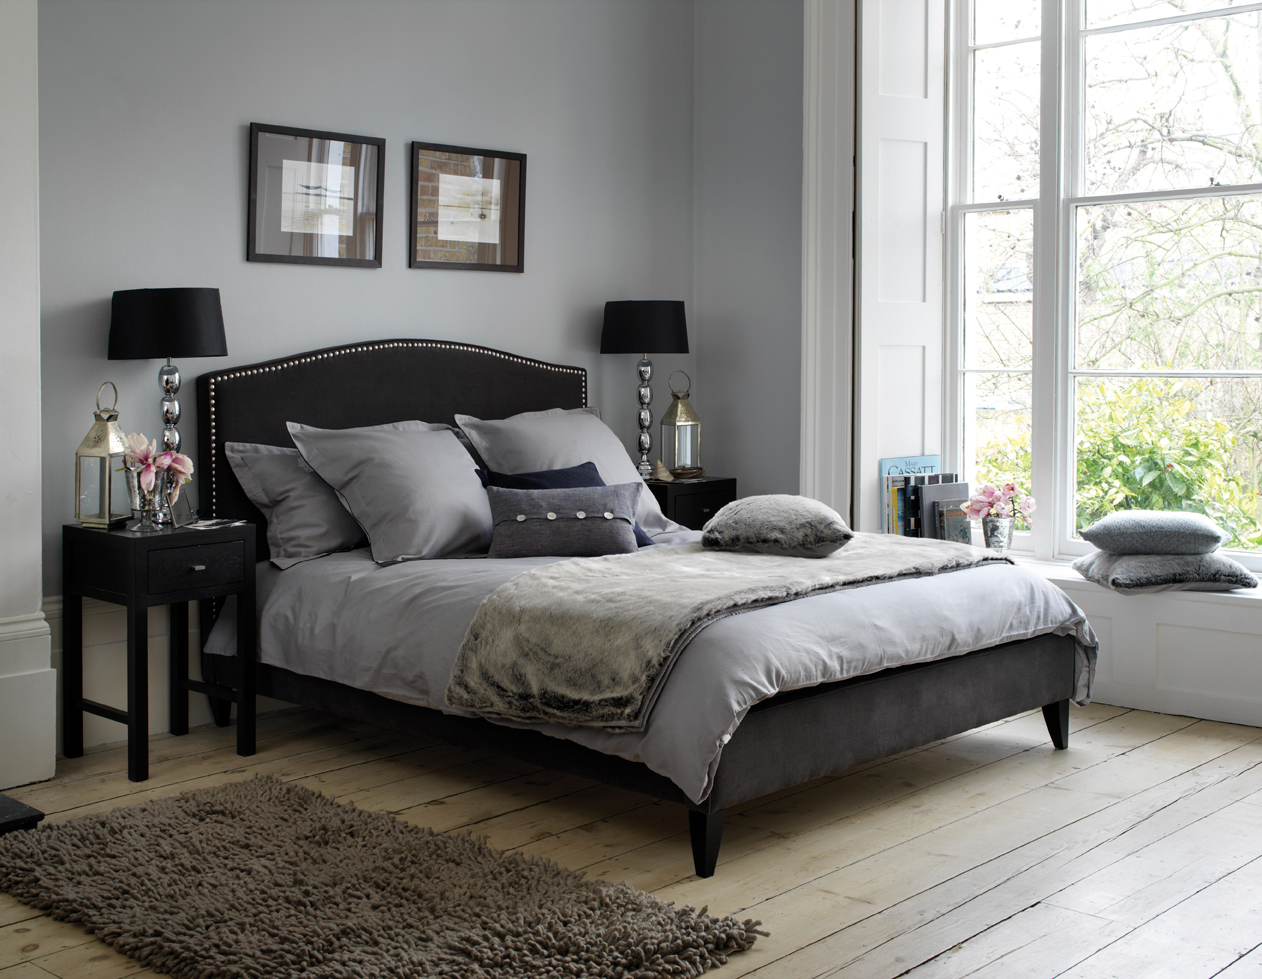 black and gray bedroom design photo - 4